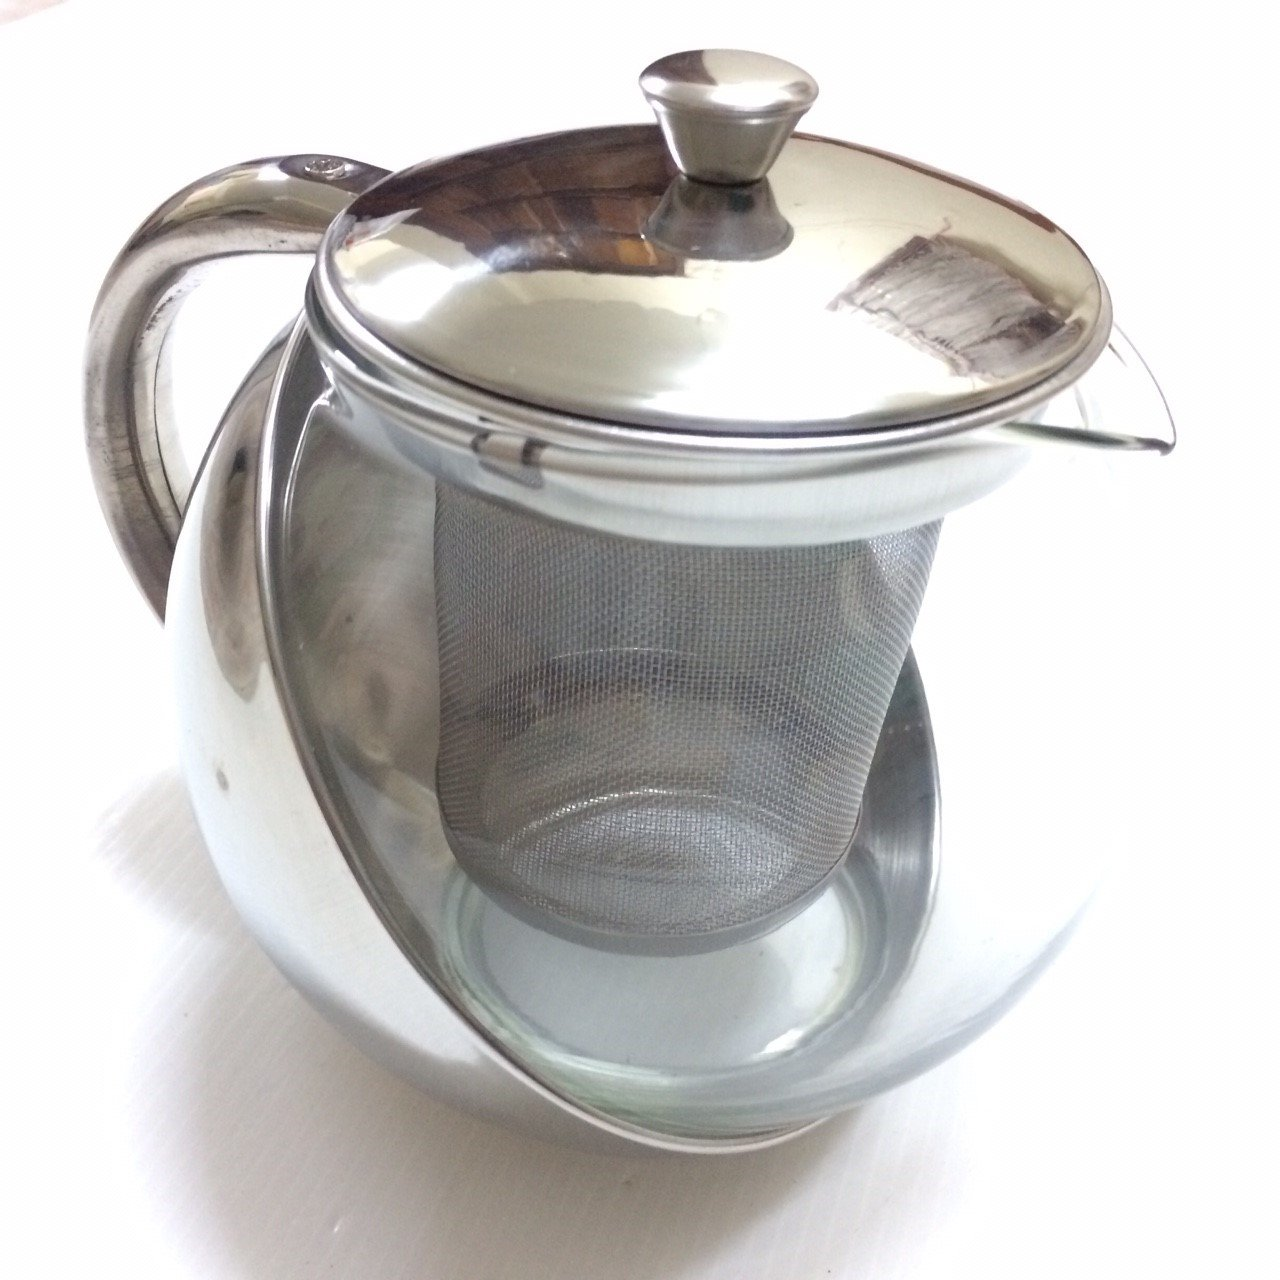 Half-Moon Teapot and Tea Strainer Set & Lid Teapot Kettle Kitchen Dining 25.36 oz.